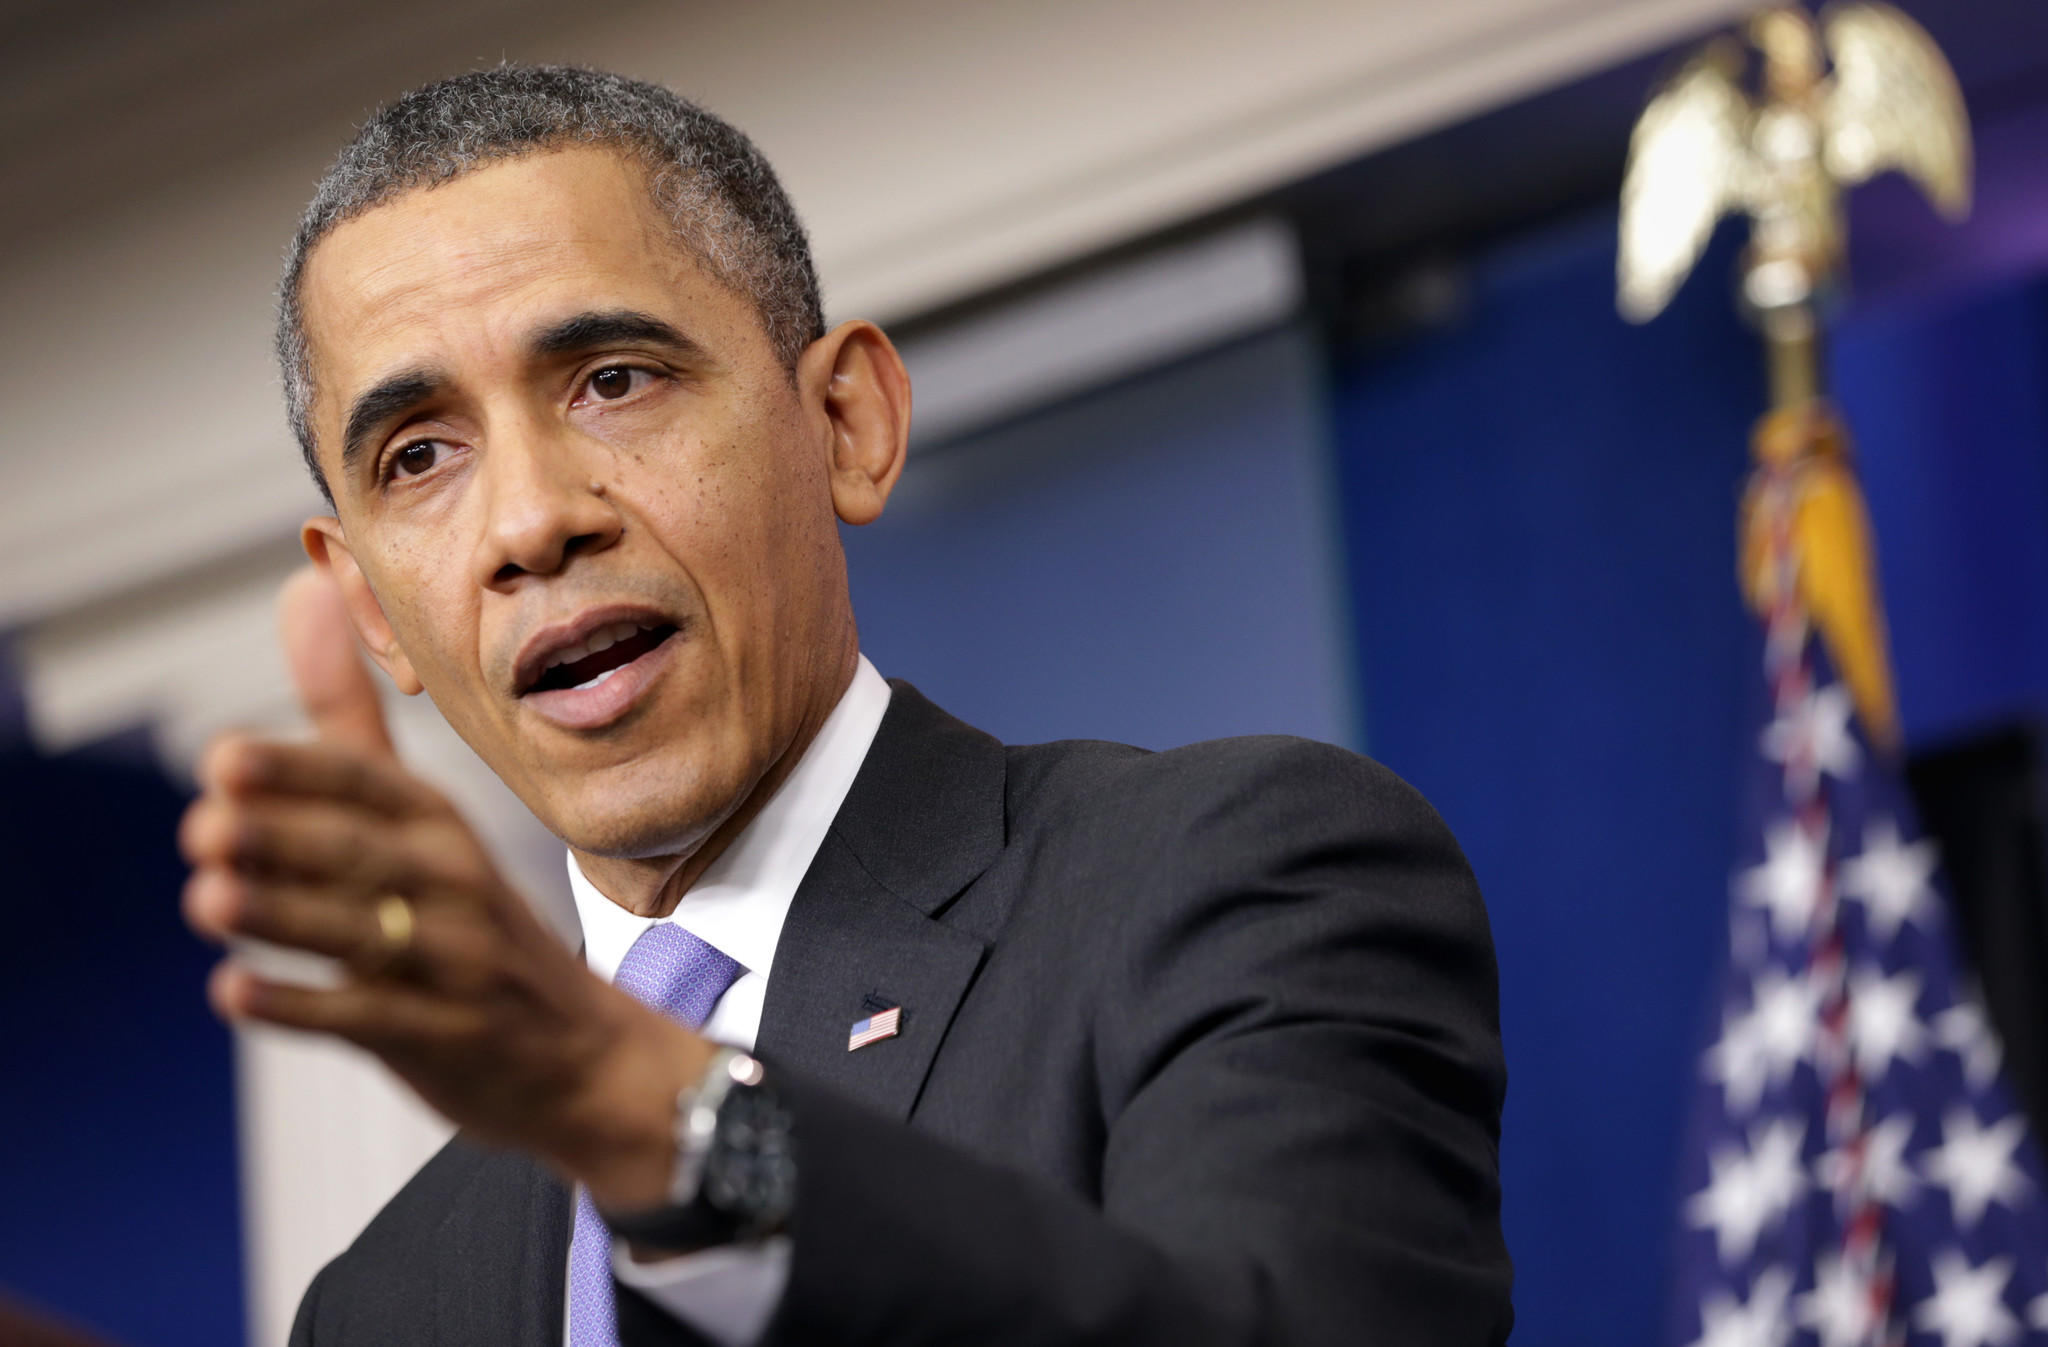 President Barack Obama speaks during a news conference at the James Brady Press Briefing Room of the White House